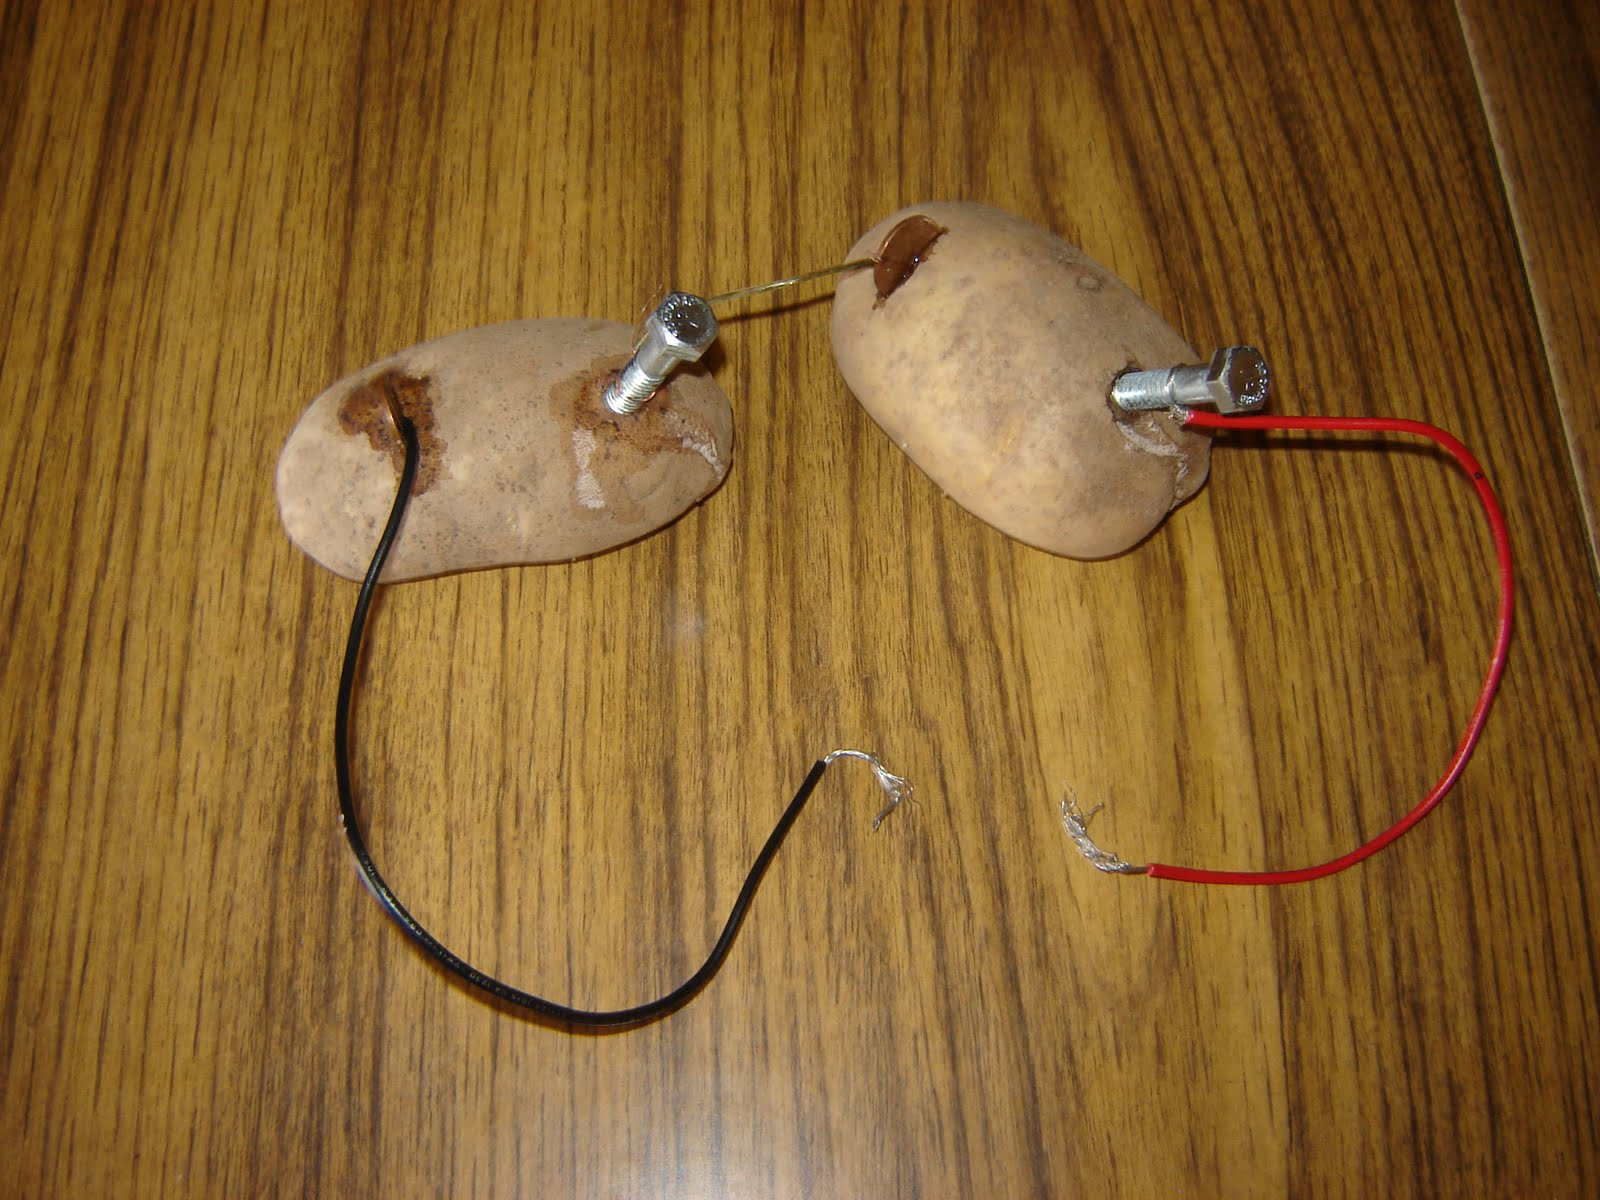 potato battery science project Which potato makes a better battery science fair inspiration  my son decided that he wanted to create a potato battery,  kid done a science fair project this.